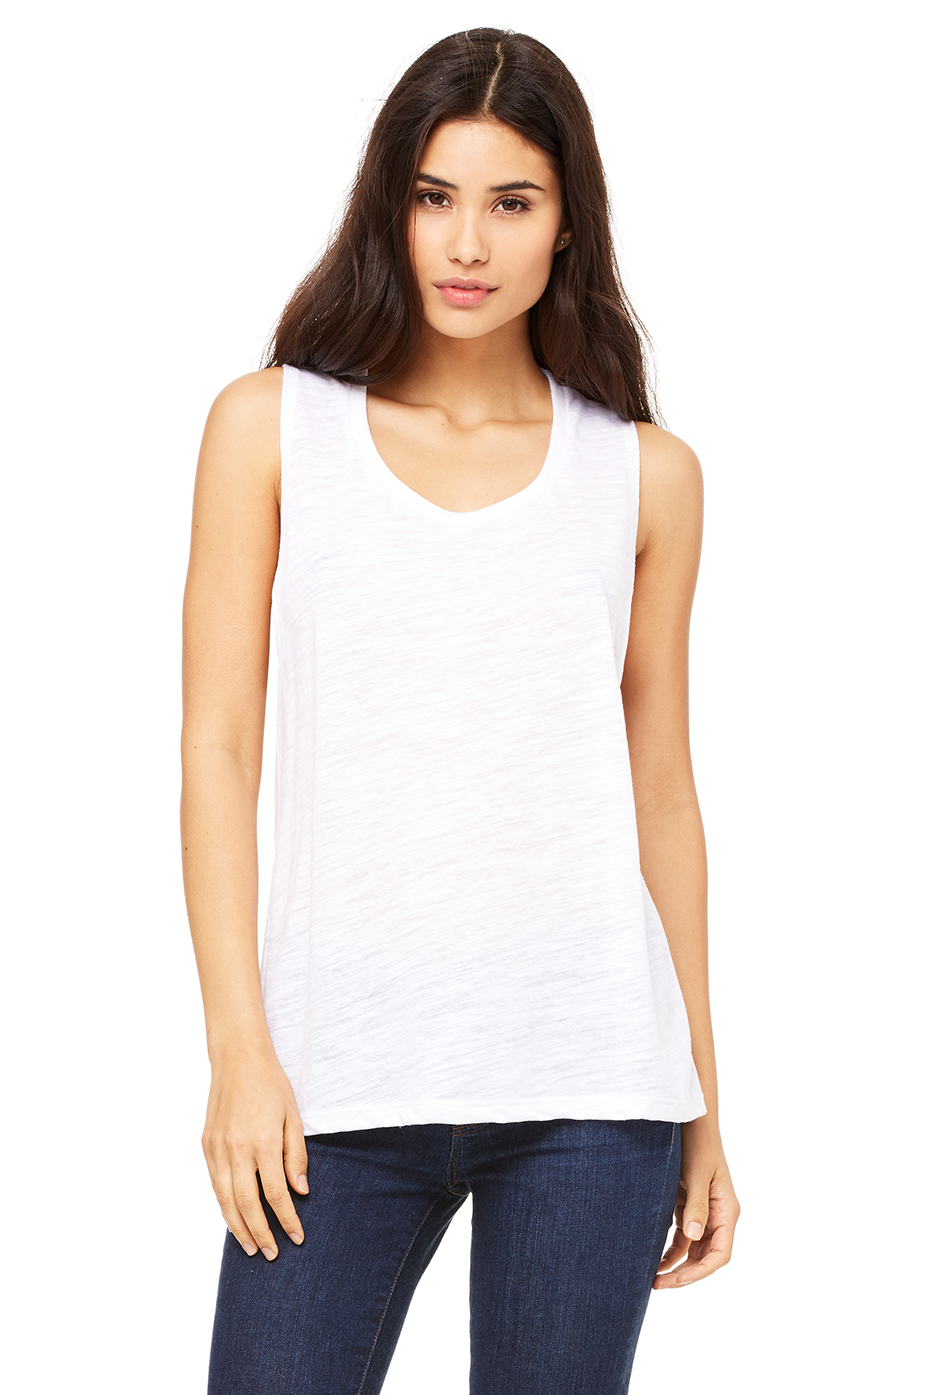 Product Features Essential cotton tank top is a key casual piece to wear layered or alone.